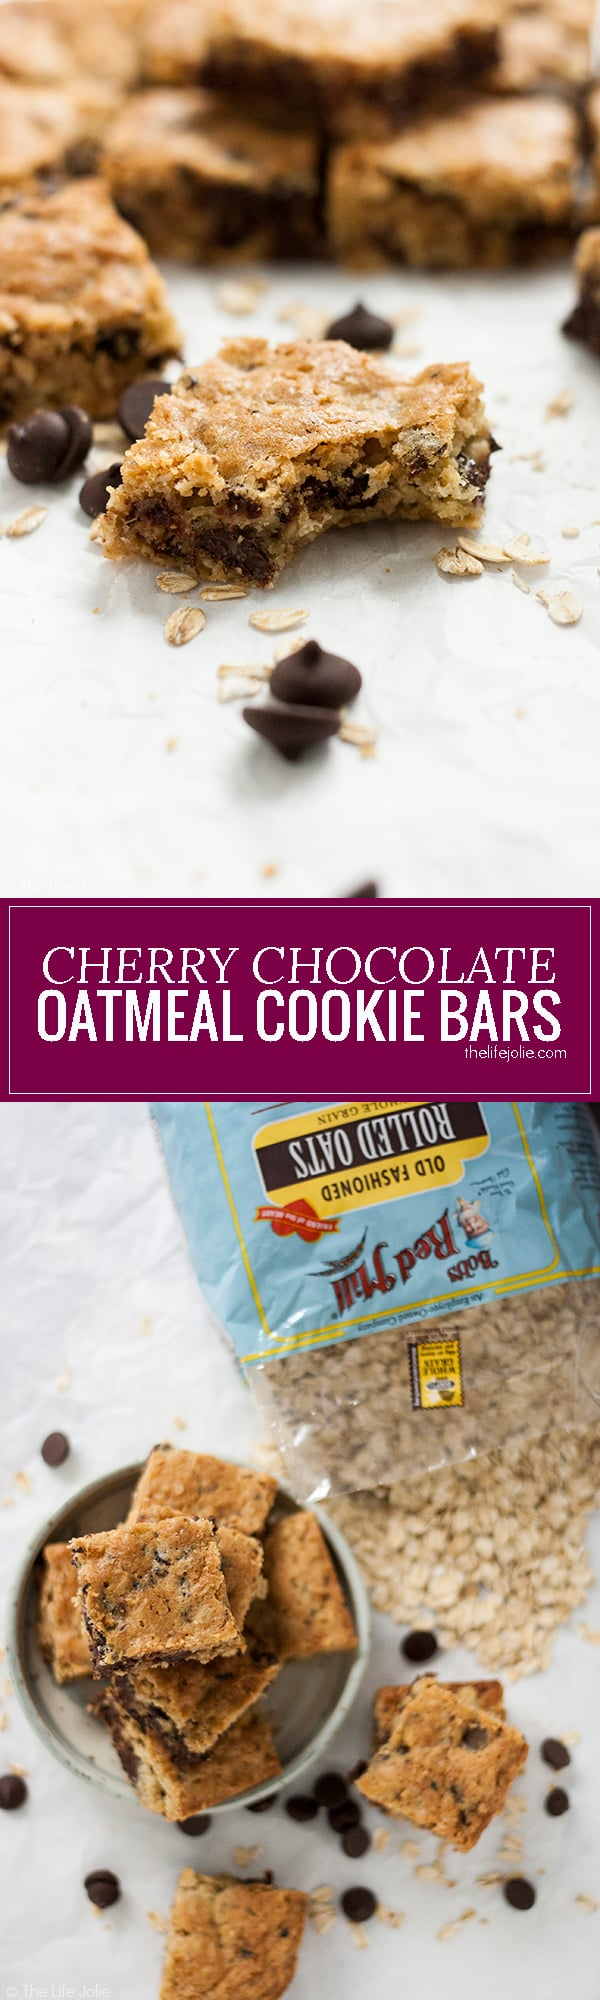 This Cherry Chocolate Oatmeal Cookie Bar recipe makes a great lunchbox treat and after school snack! These chewy treats have dark chocolate chips and dried cherries. They're quick and easy to make and a huge hit with the whole family!